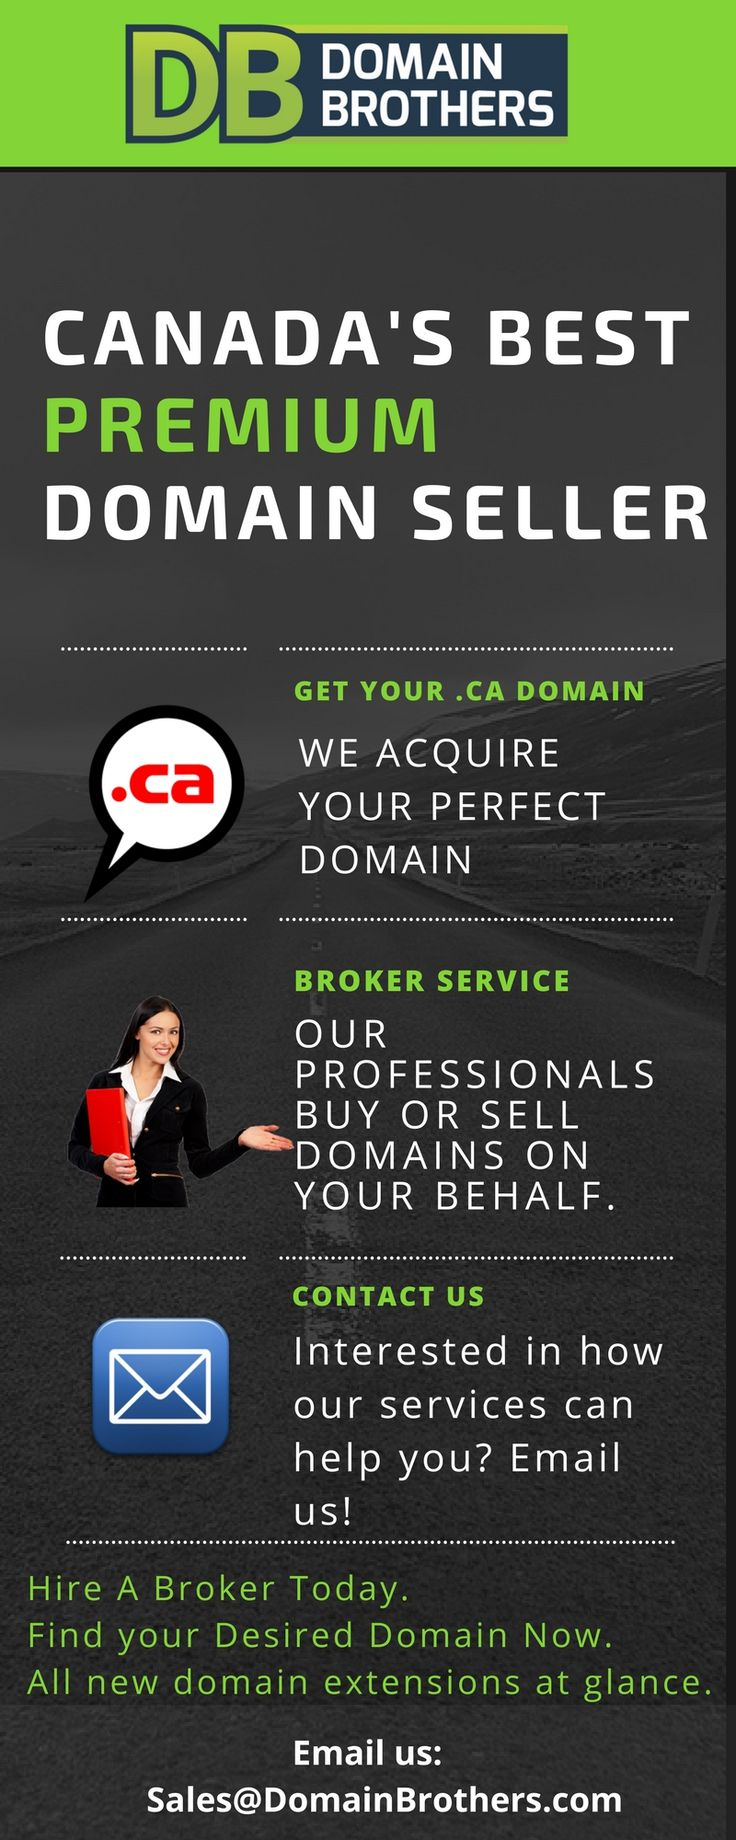 Buy and sell domains with DomainBrothers.com. Over 15+ Years of Experience in Buying, Selling and Acquiring a Domain Name on Your Behalf. Buy It Now! www.DomainBrothers.com